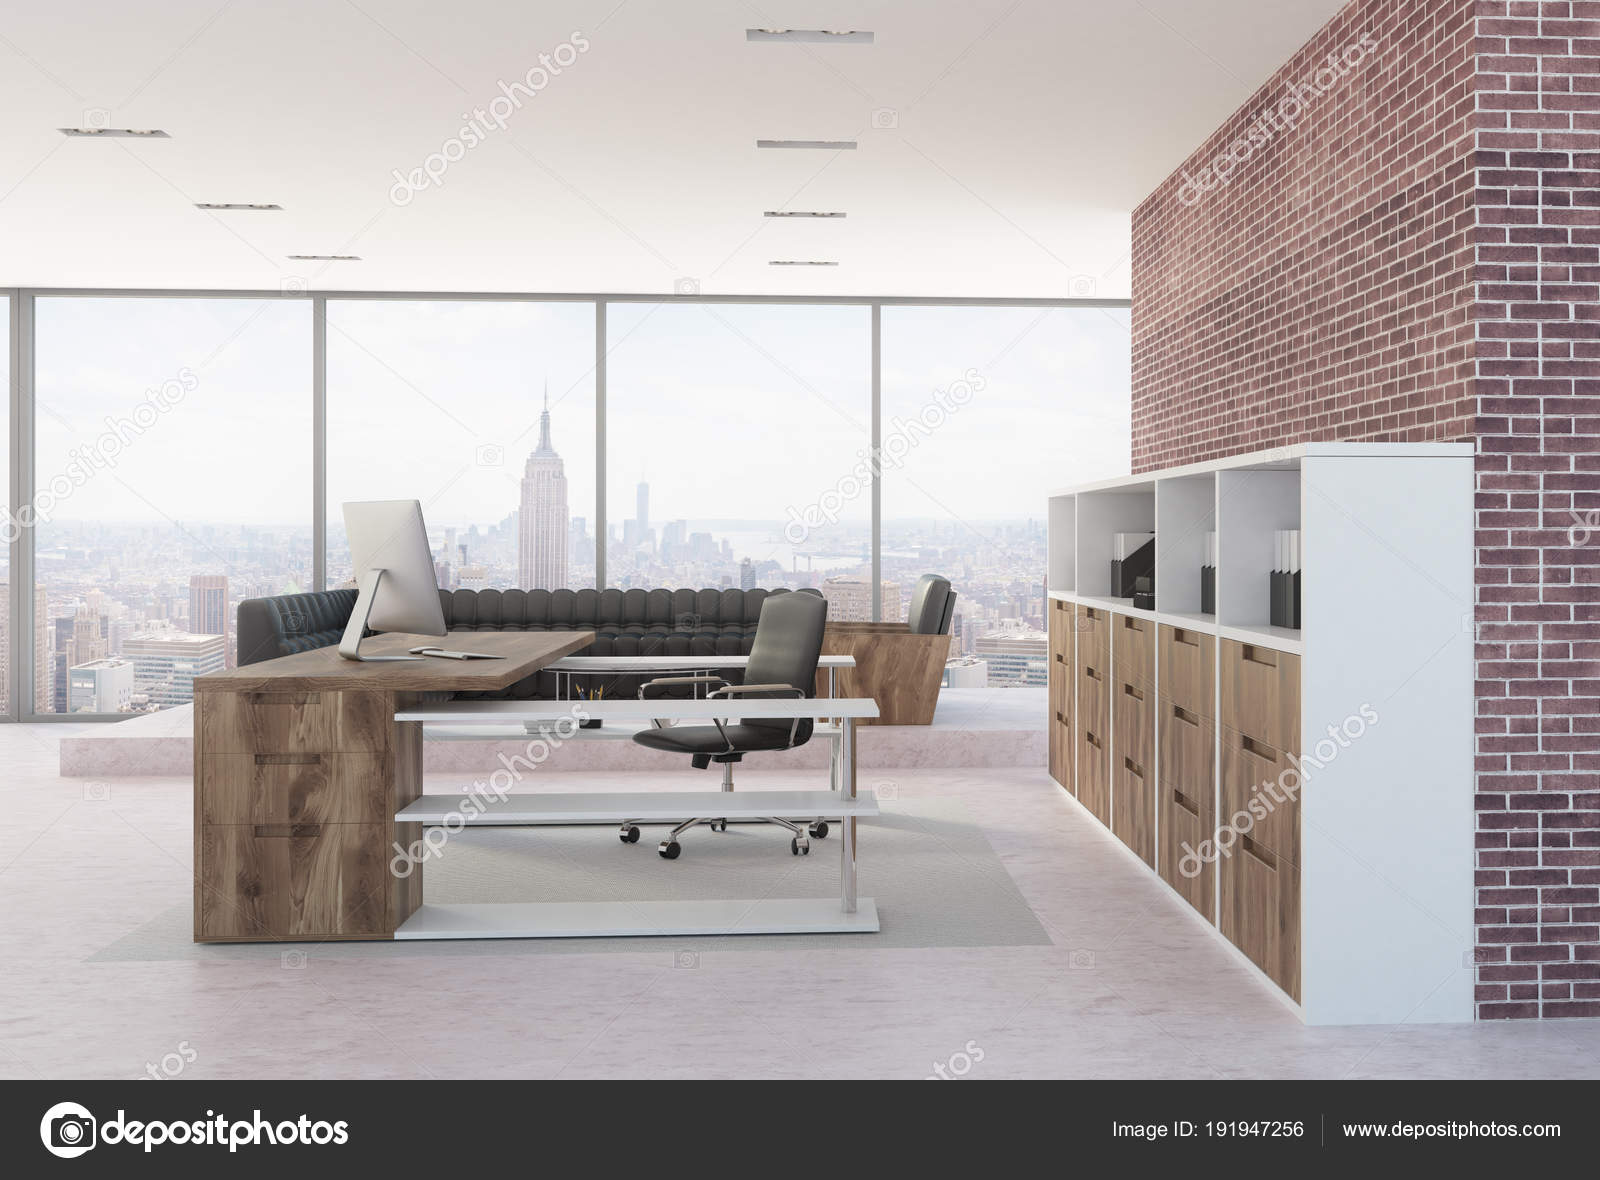 Brick Office Of A Company Leader With Concrete Floor Loft Windows And Dark Wooden Furniture Black Sofa In The Background 3d Rendering Mock Up Photo